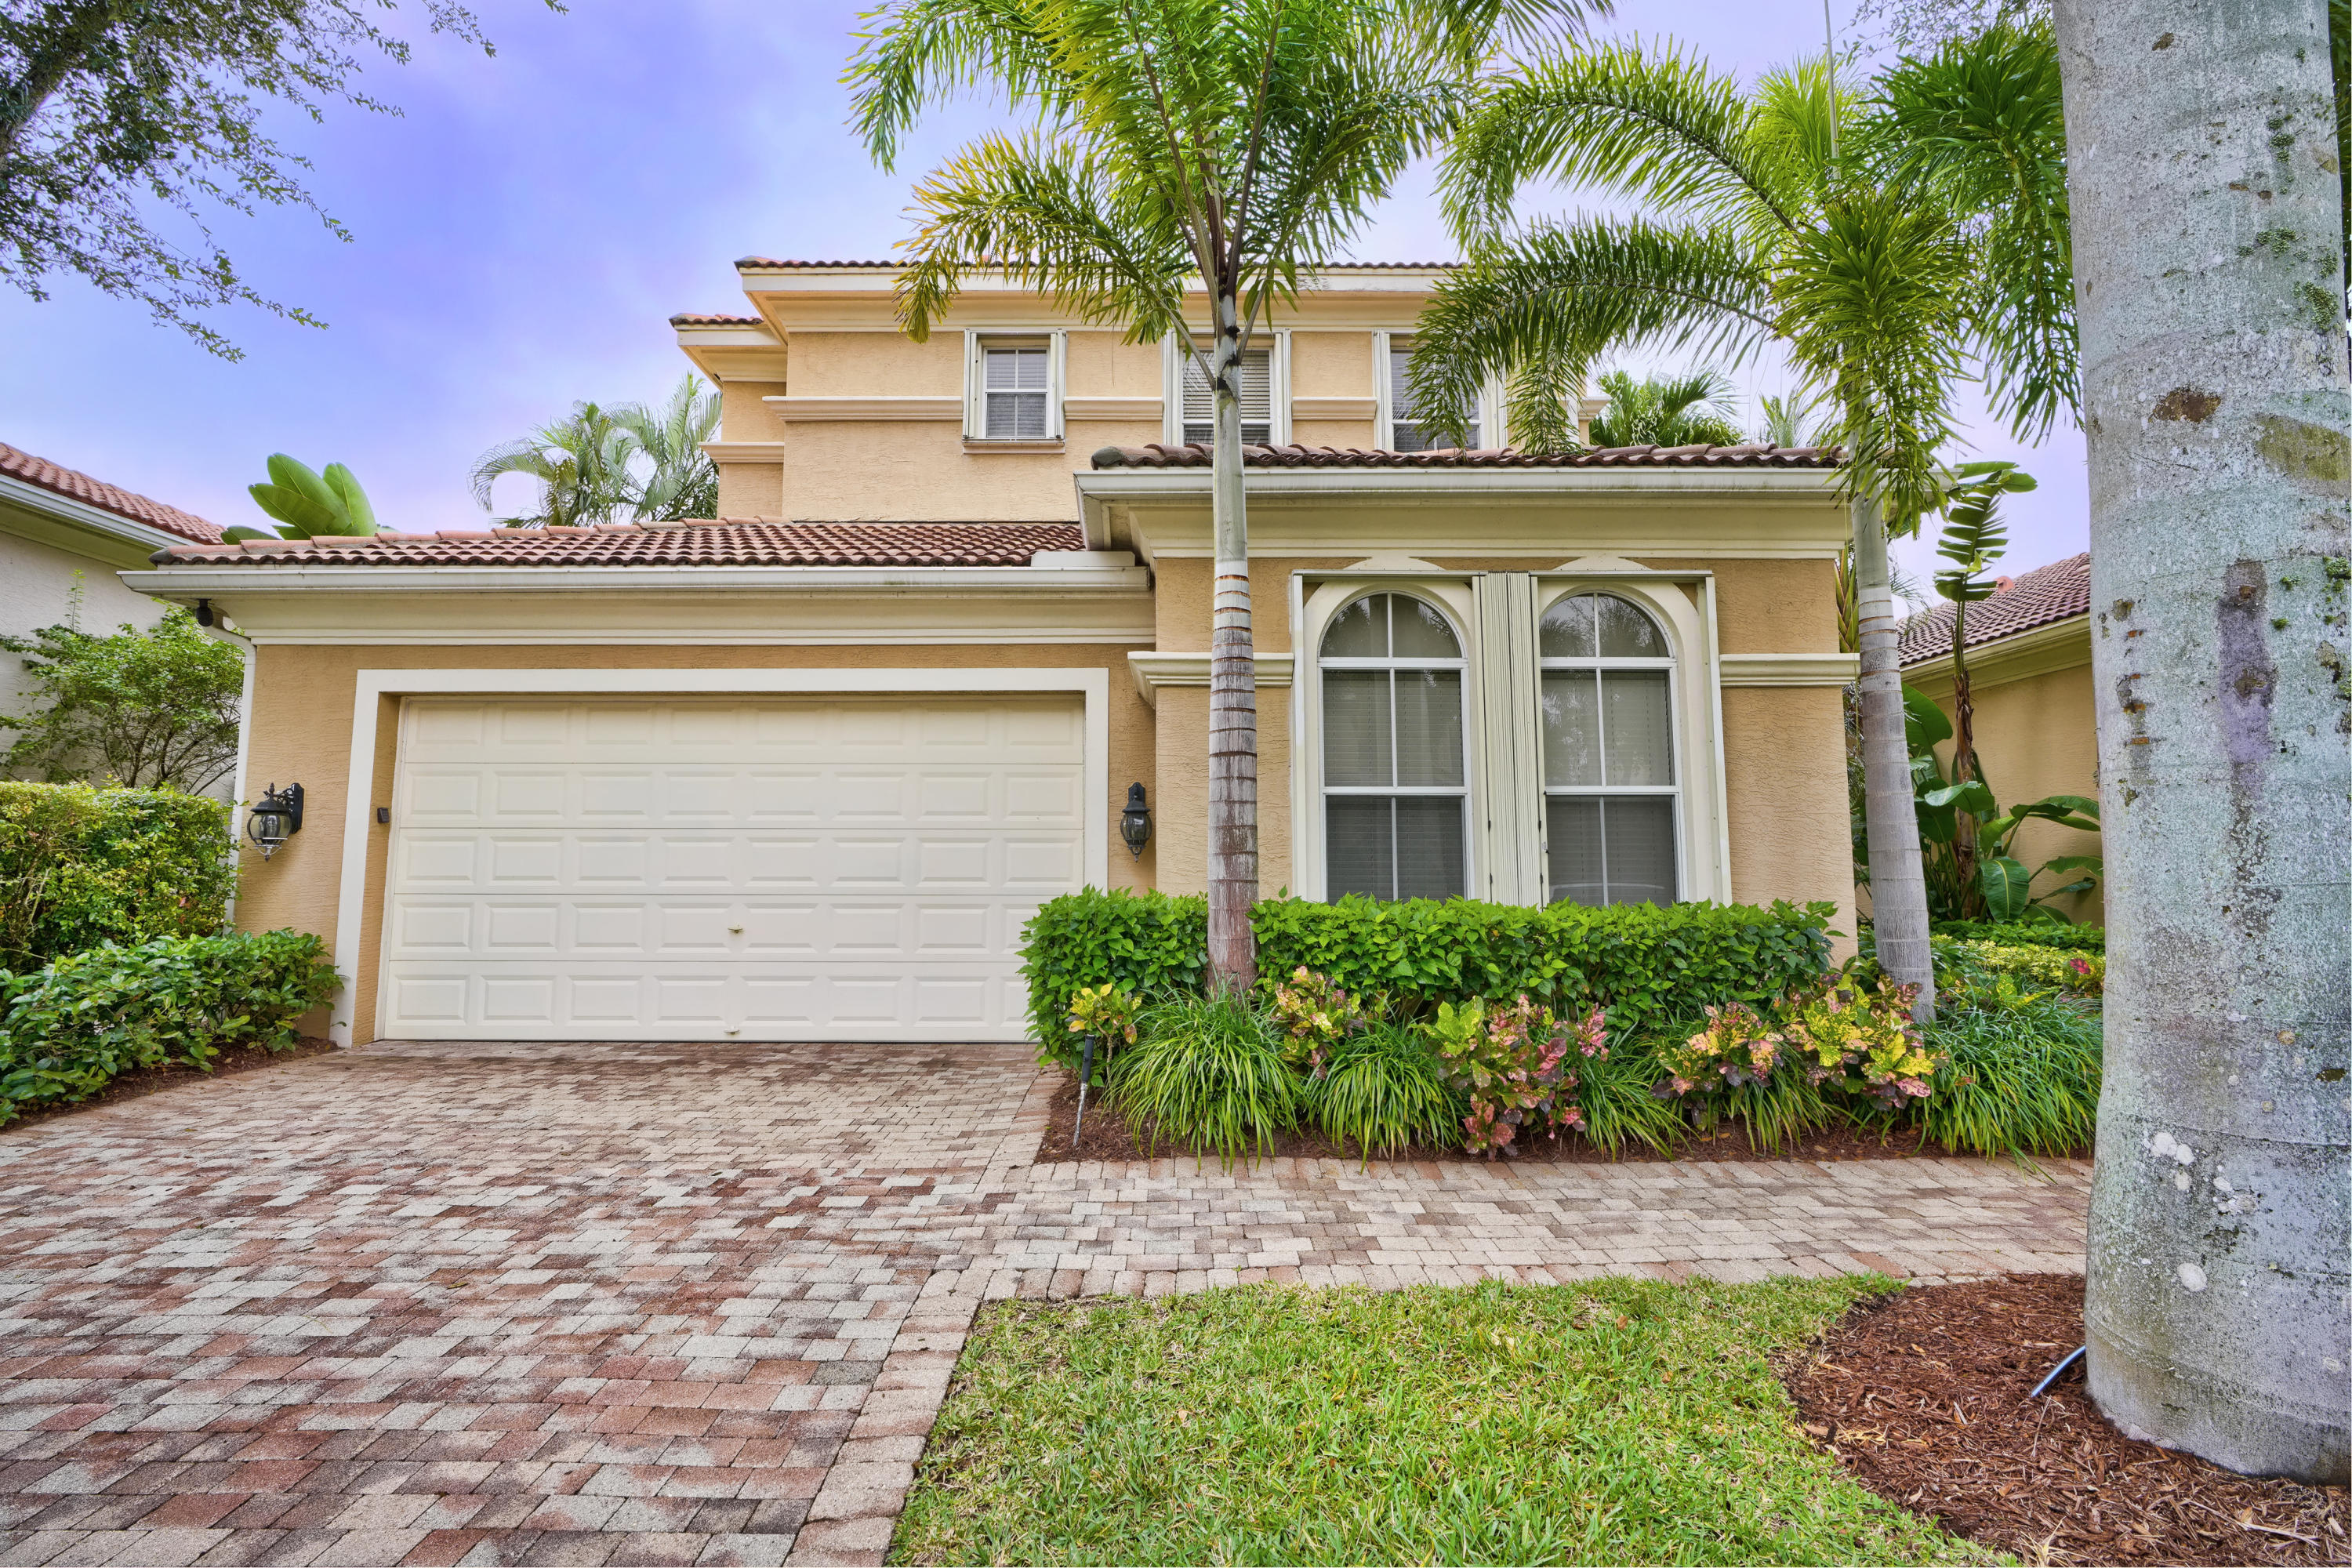 123 Andalusia Way, Palm Beach Gardens, Florida 33418, 4 Bedrooms Bedrooms, ,3 BathroomsBathrooms,F,Single family,Andalusia,RX-10595373